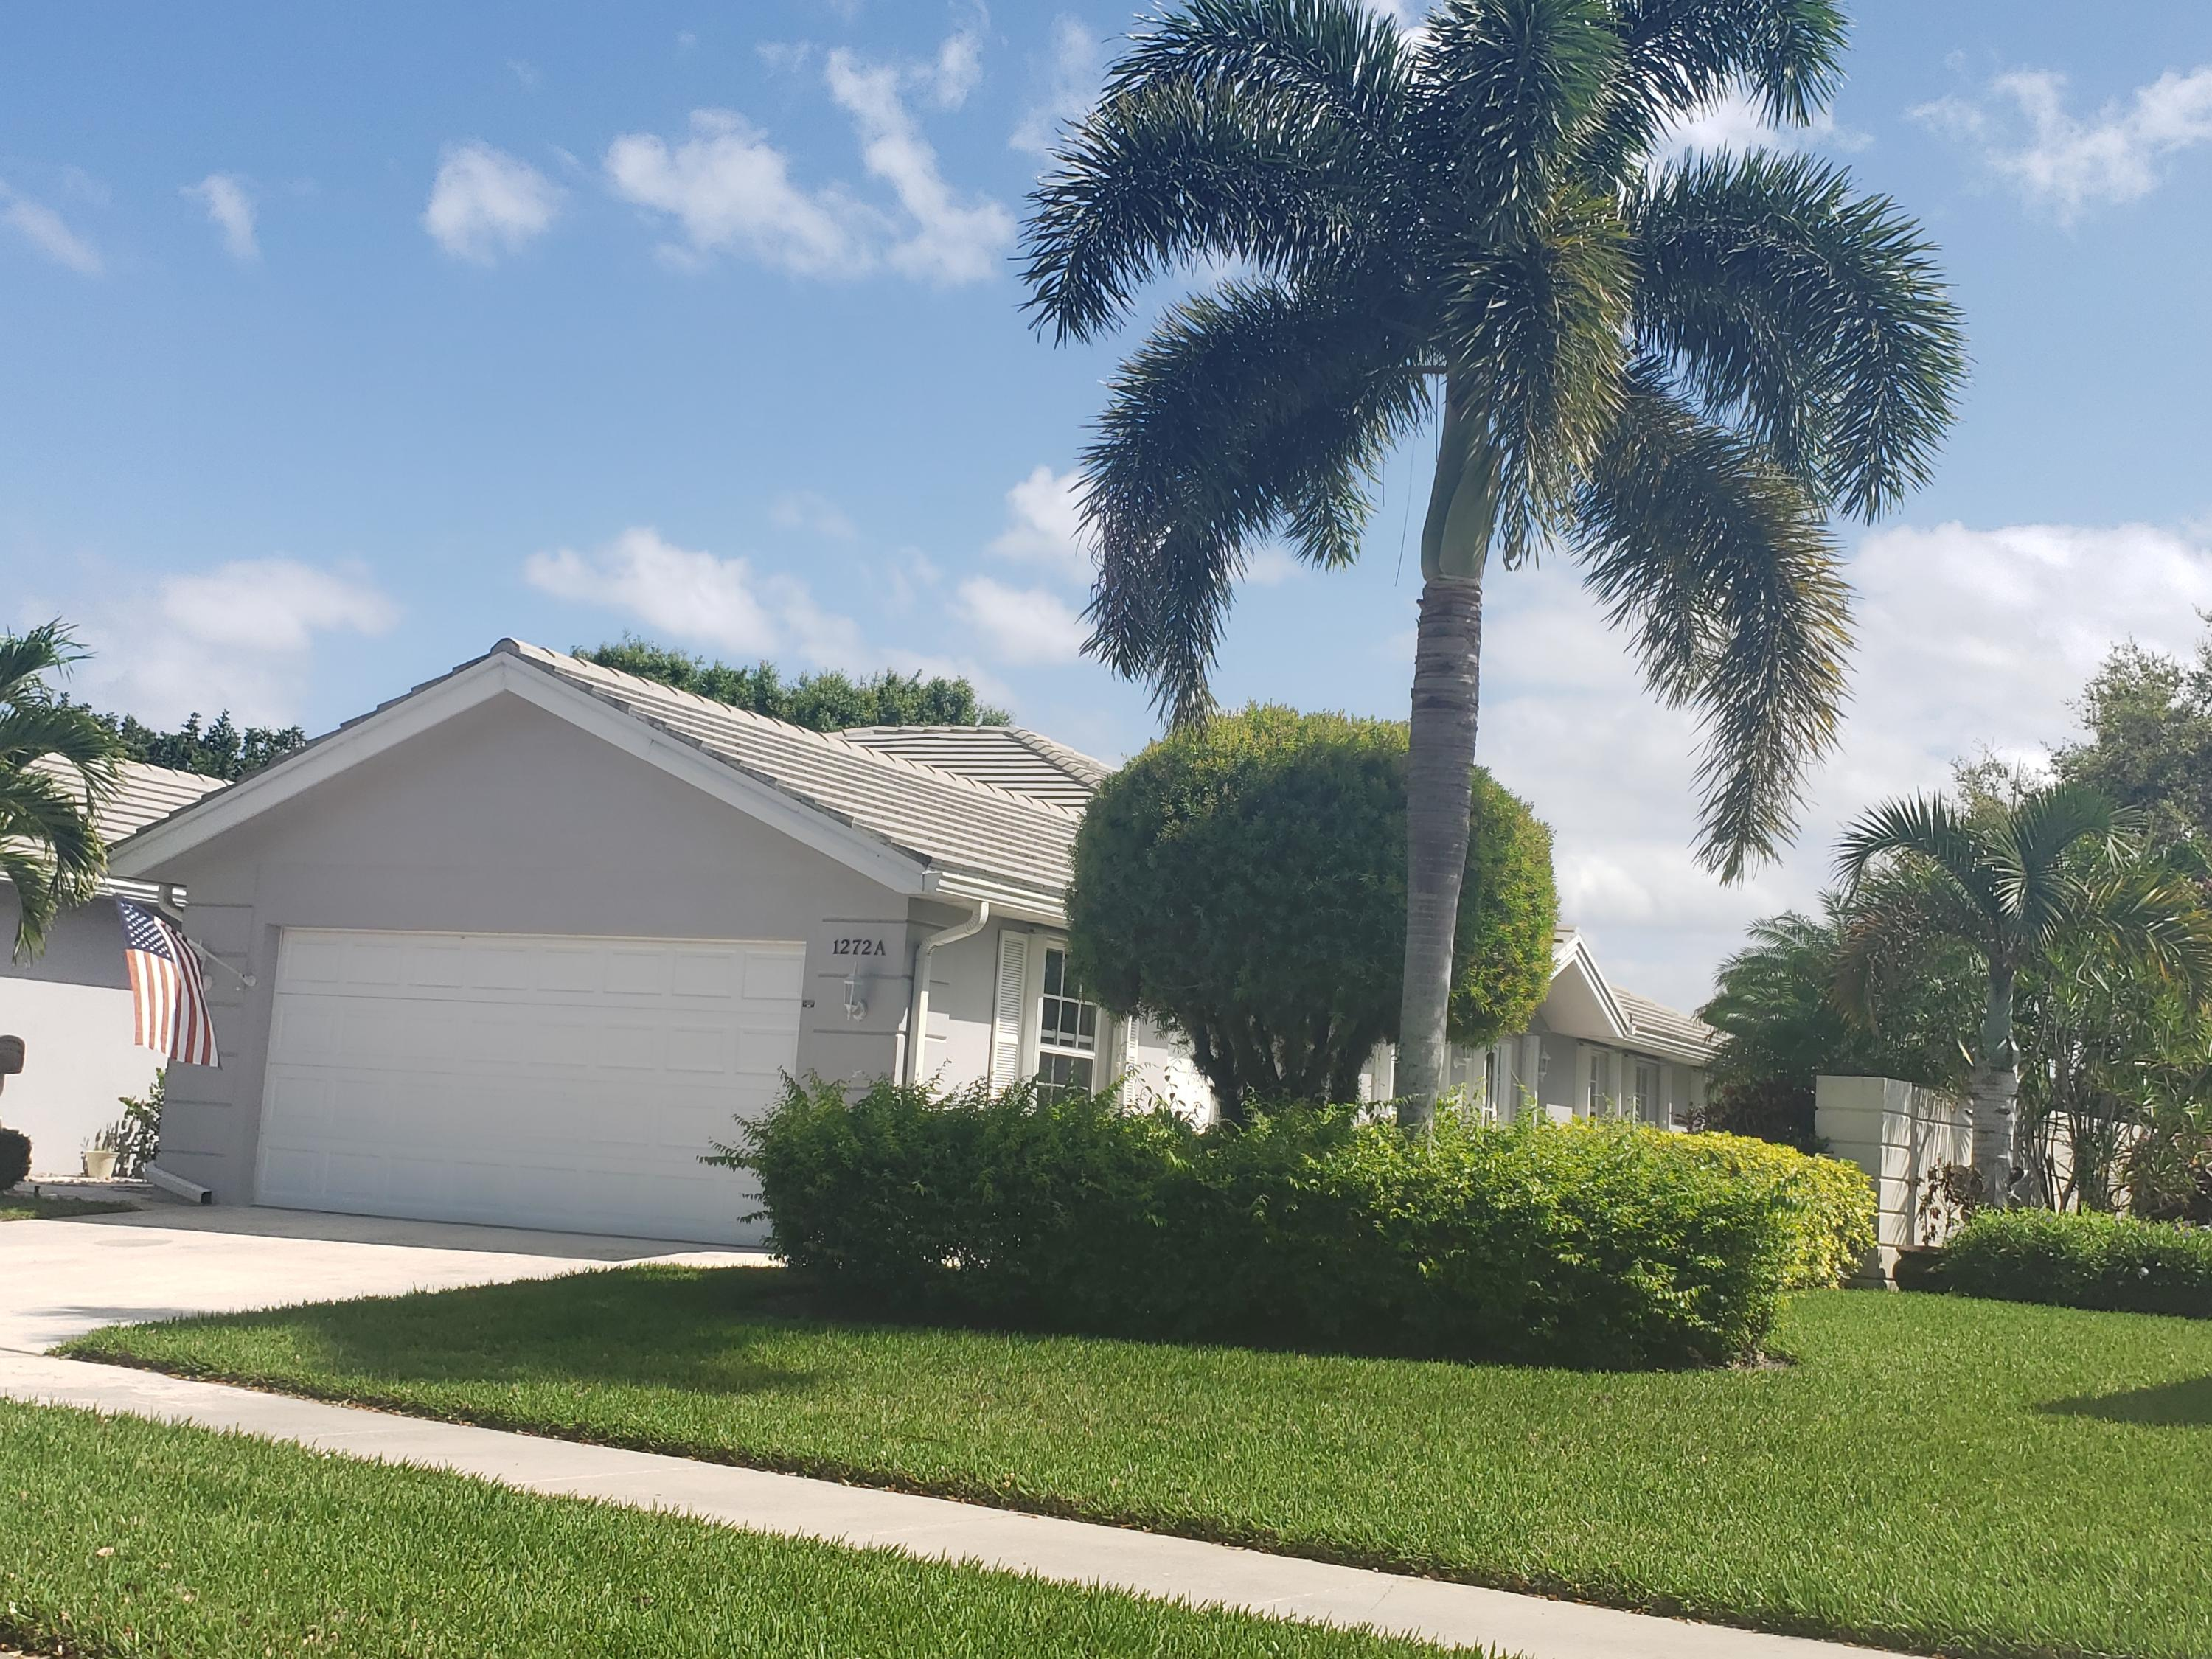 LAKES AT ST LUCIE WEST PLAT NO 54 REAL ESTATE